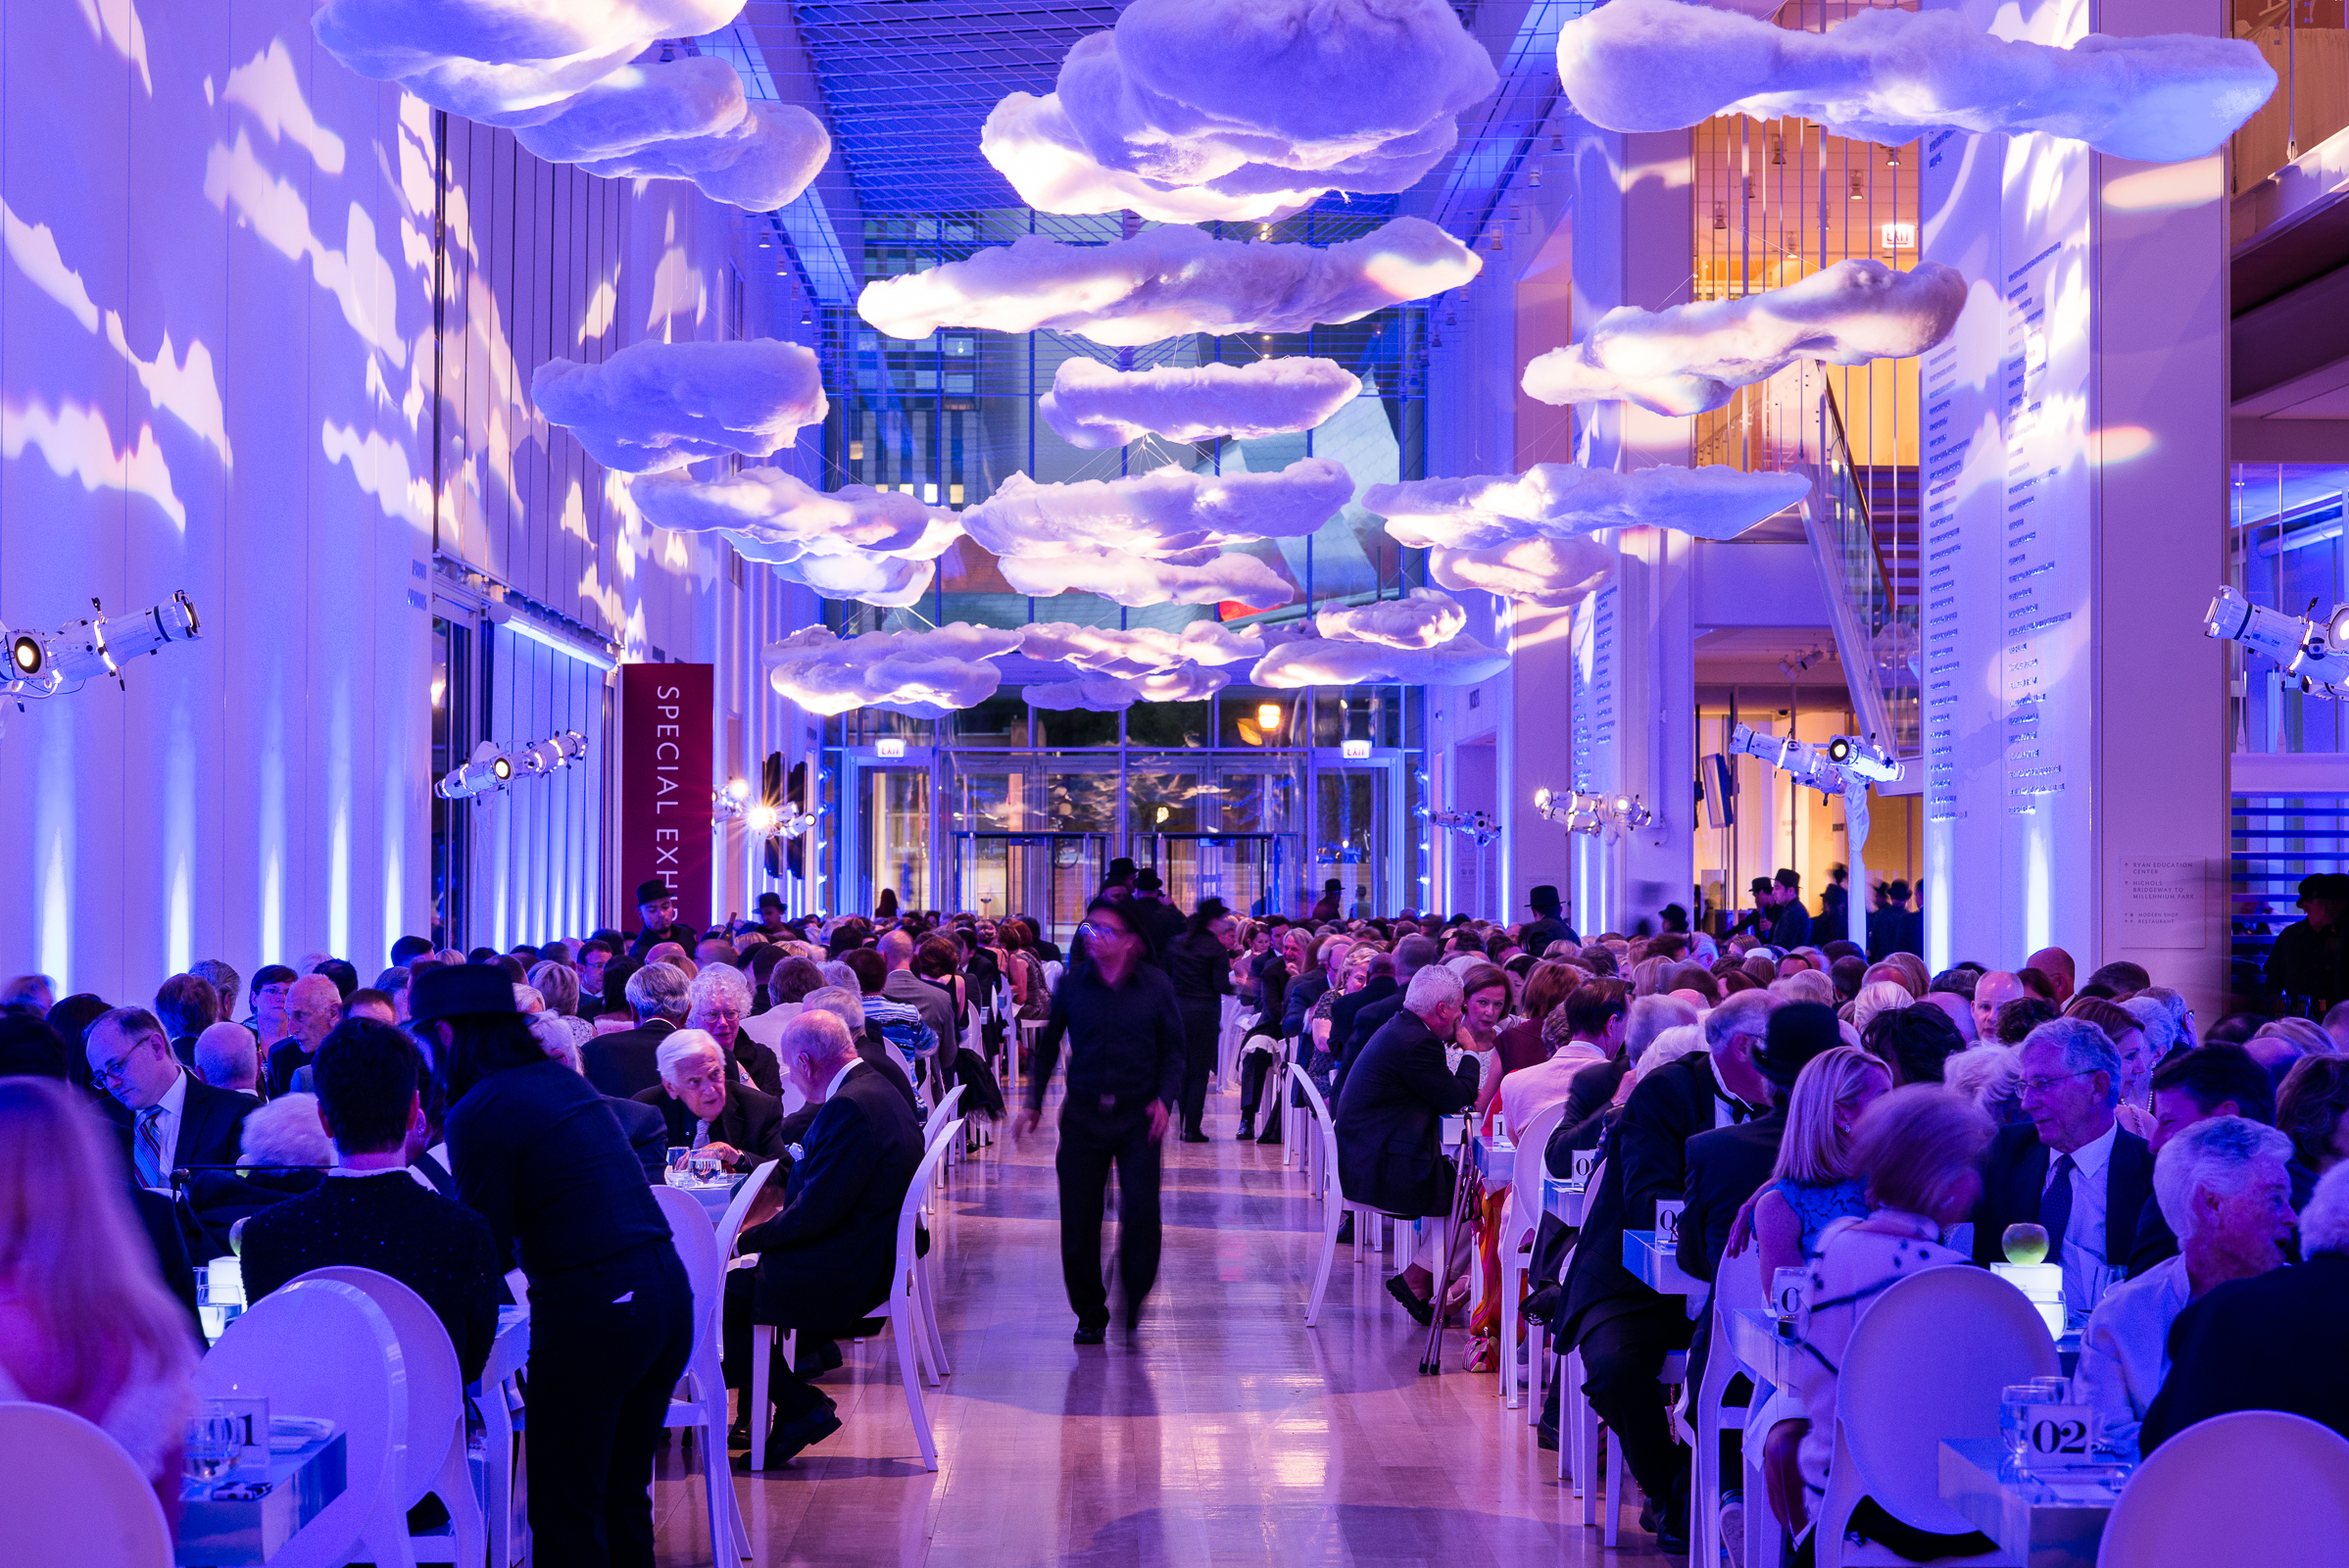 Clouds hang from the ceiling and cover the tabletops at the whimsical gala for the Magritte Opening gala at the Art Institute.